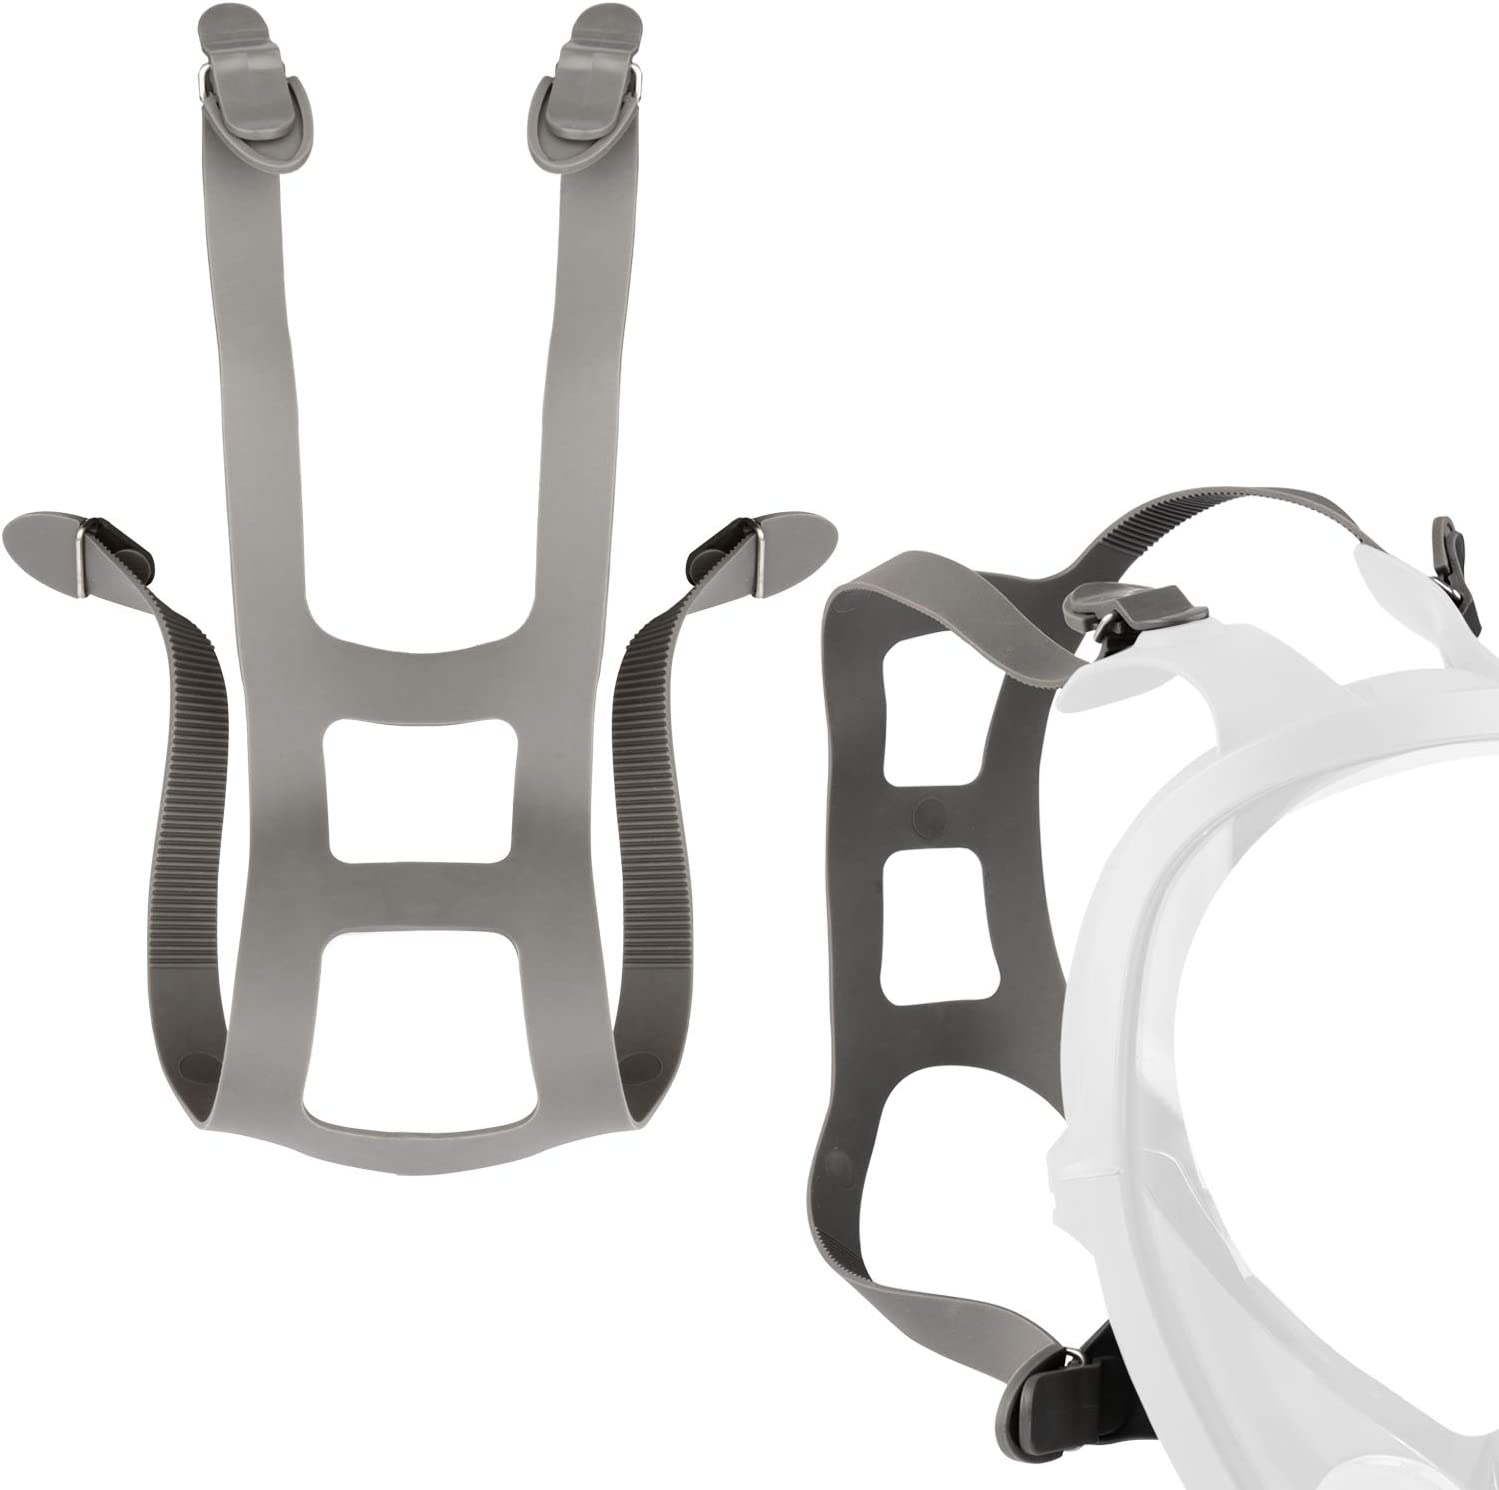 2021 new Impresa 2 Pack Head Ranking TOP15 Harness Strap Compatible 3M Full Facep with